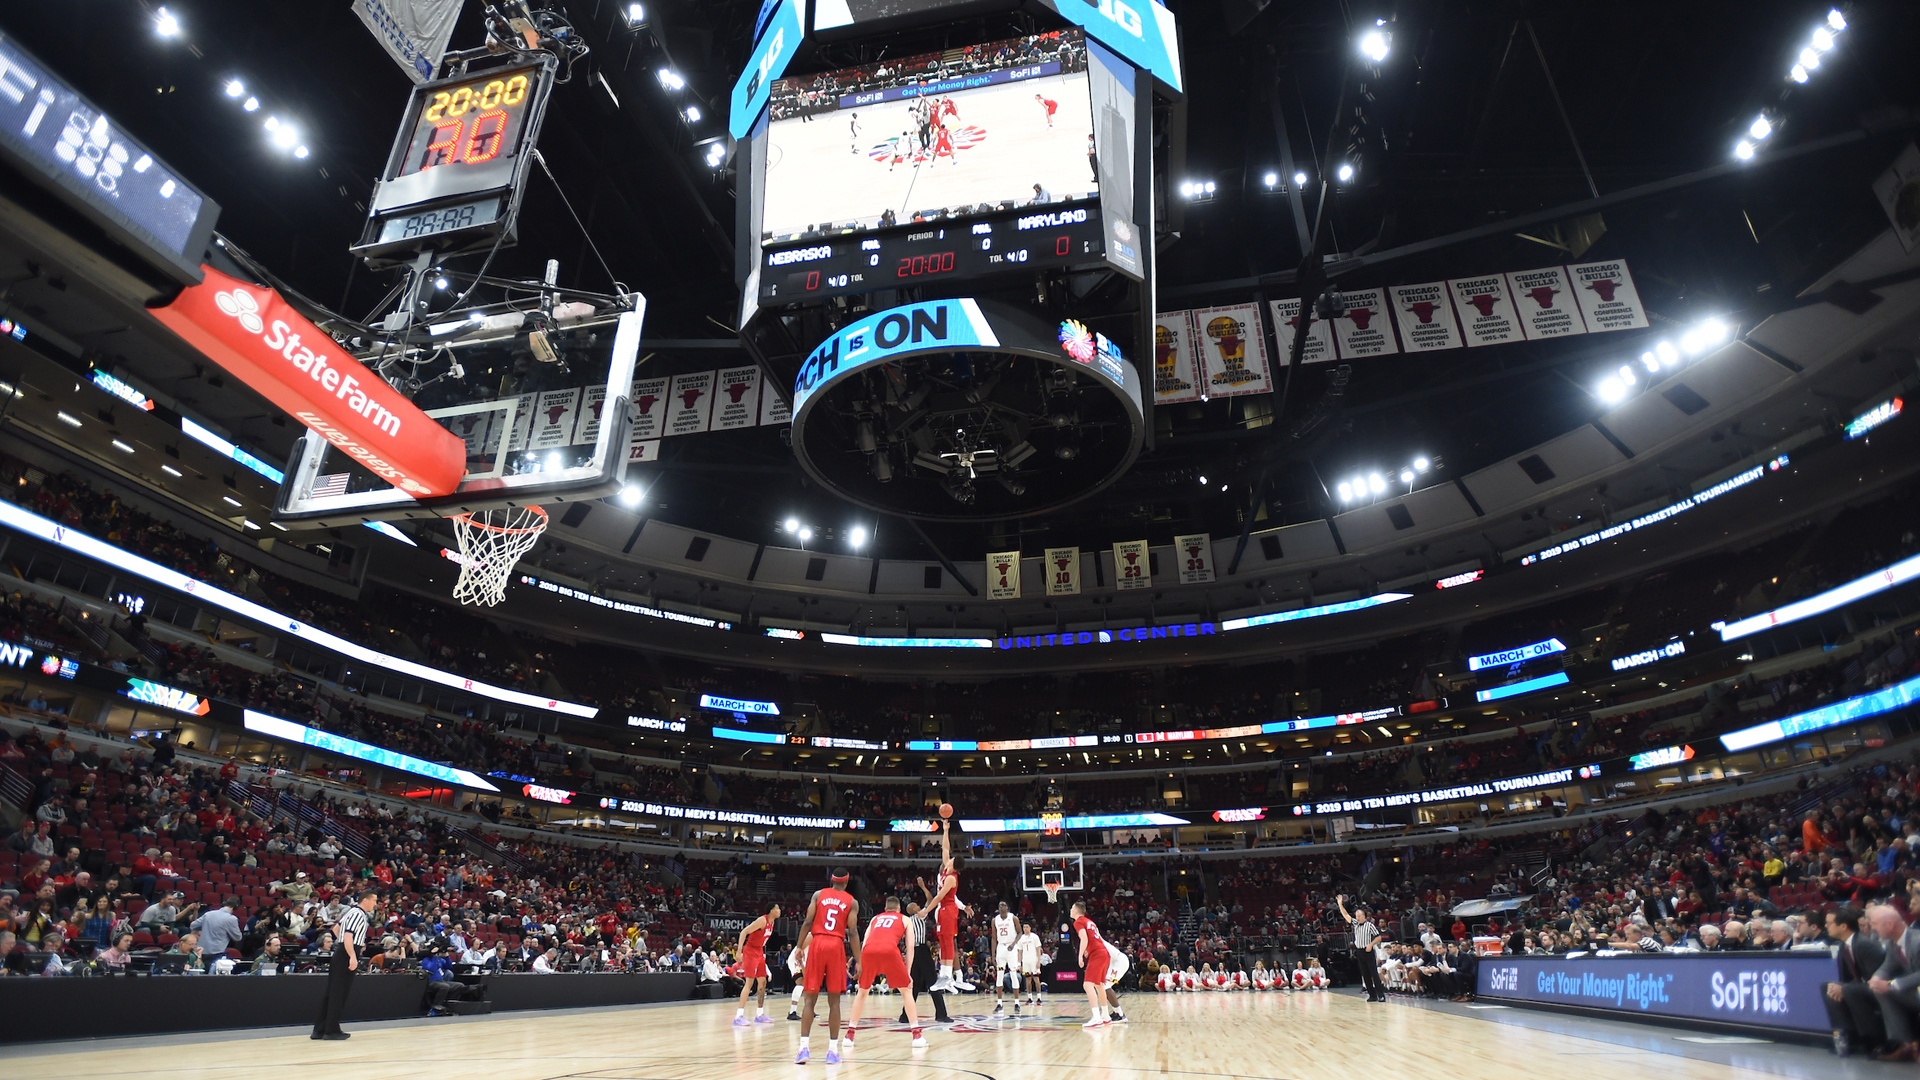 Maryland vs Nebraska Basketball Big Ten Tournament 2019